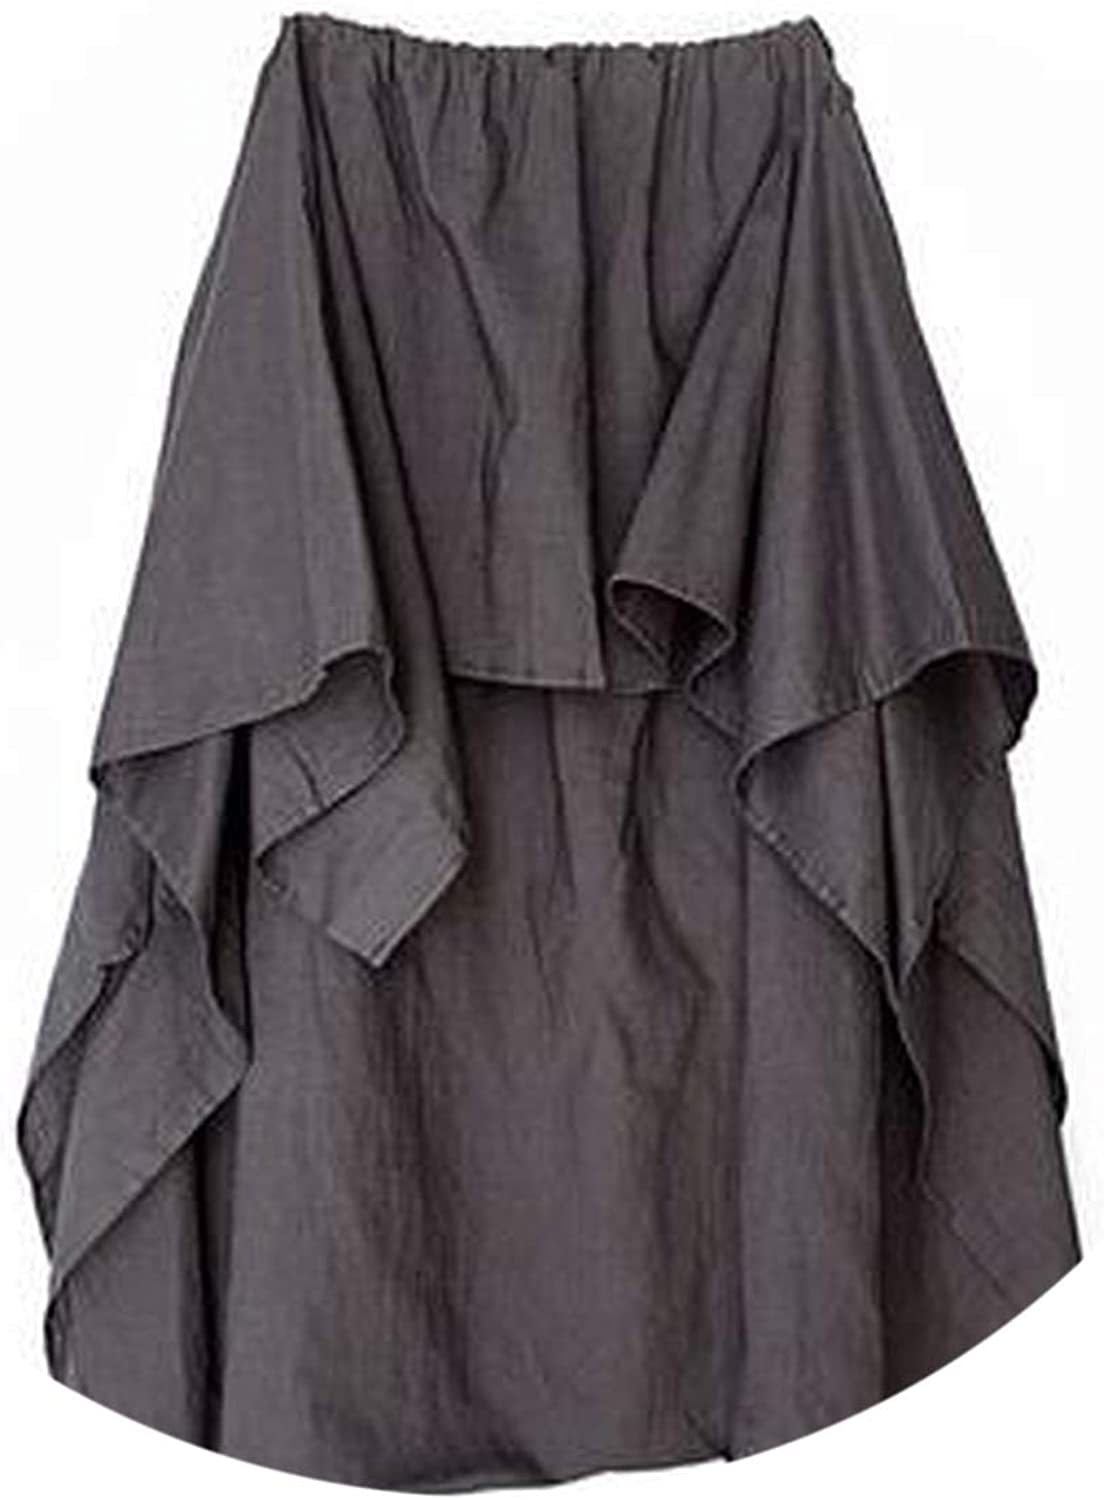 Women Wide Leg Loose Linen Cotton Asymmetric Pants Original Designer Plus Size Capris Elas,Gray,One Size